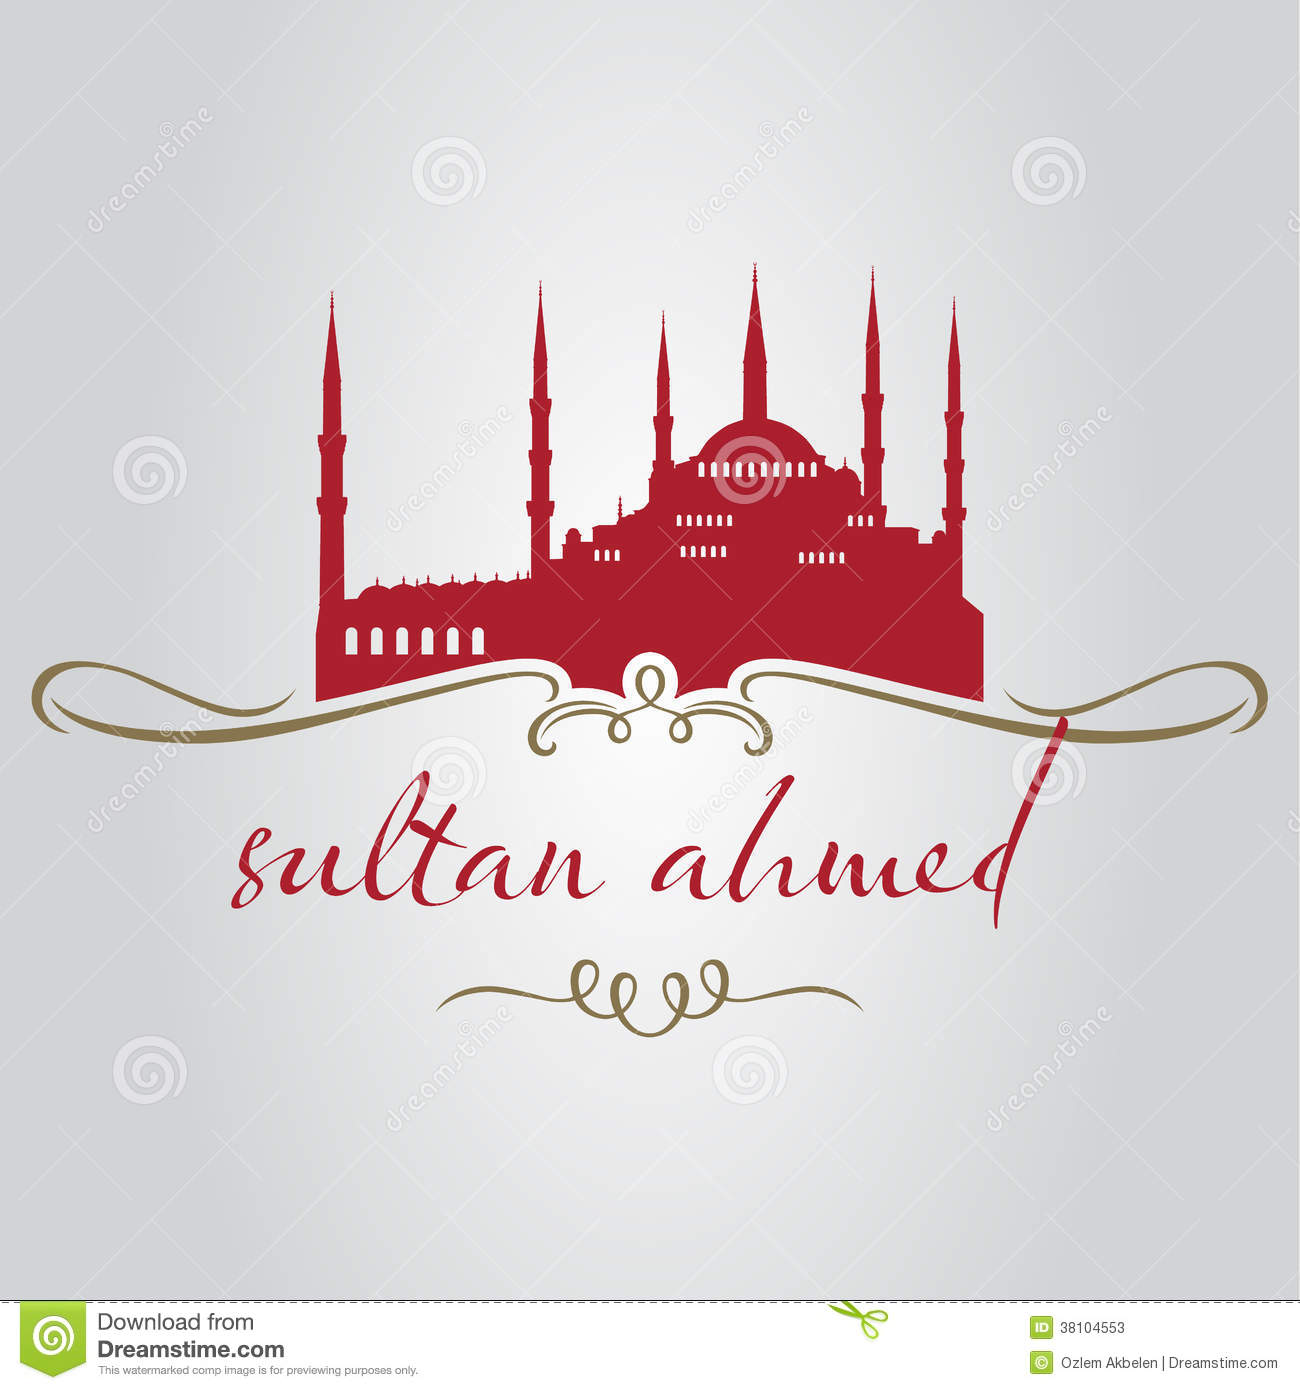 Istanbul-Sultansahmed-Moschee